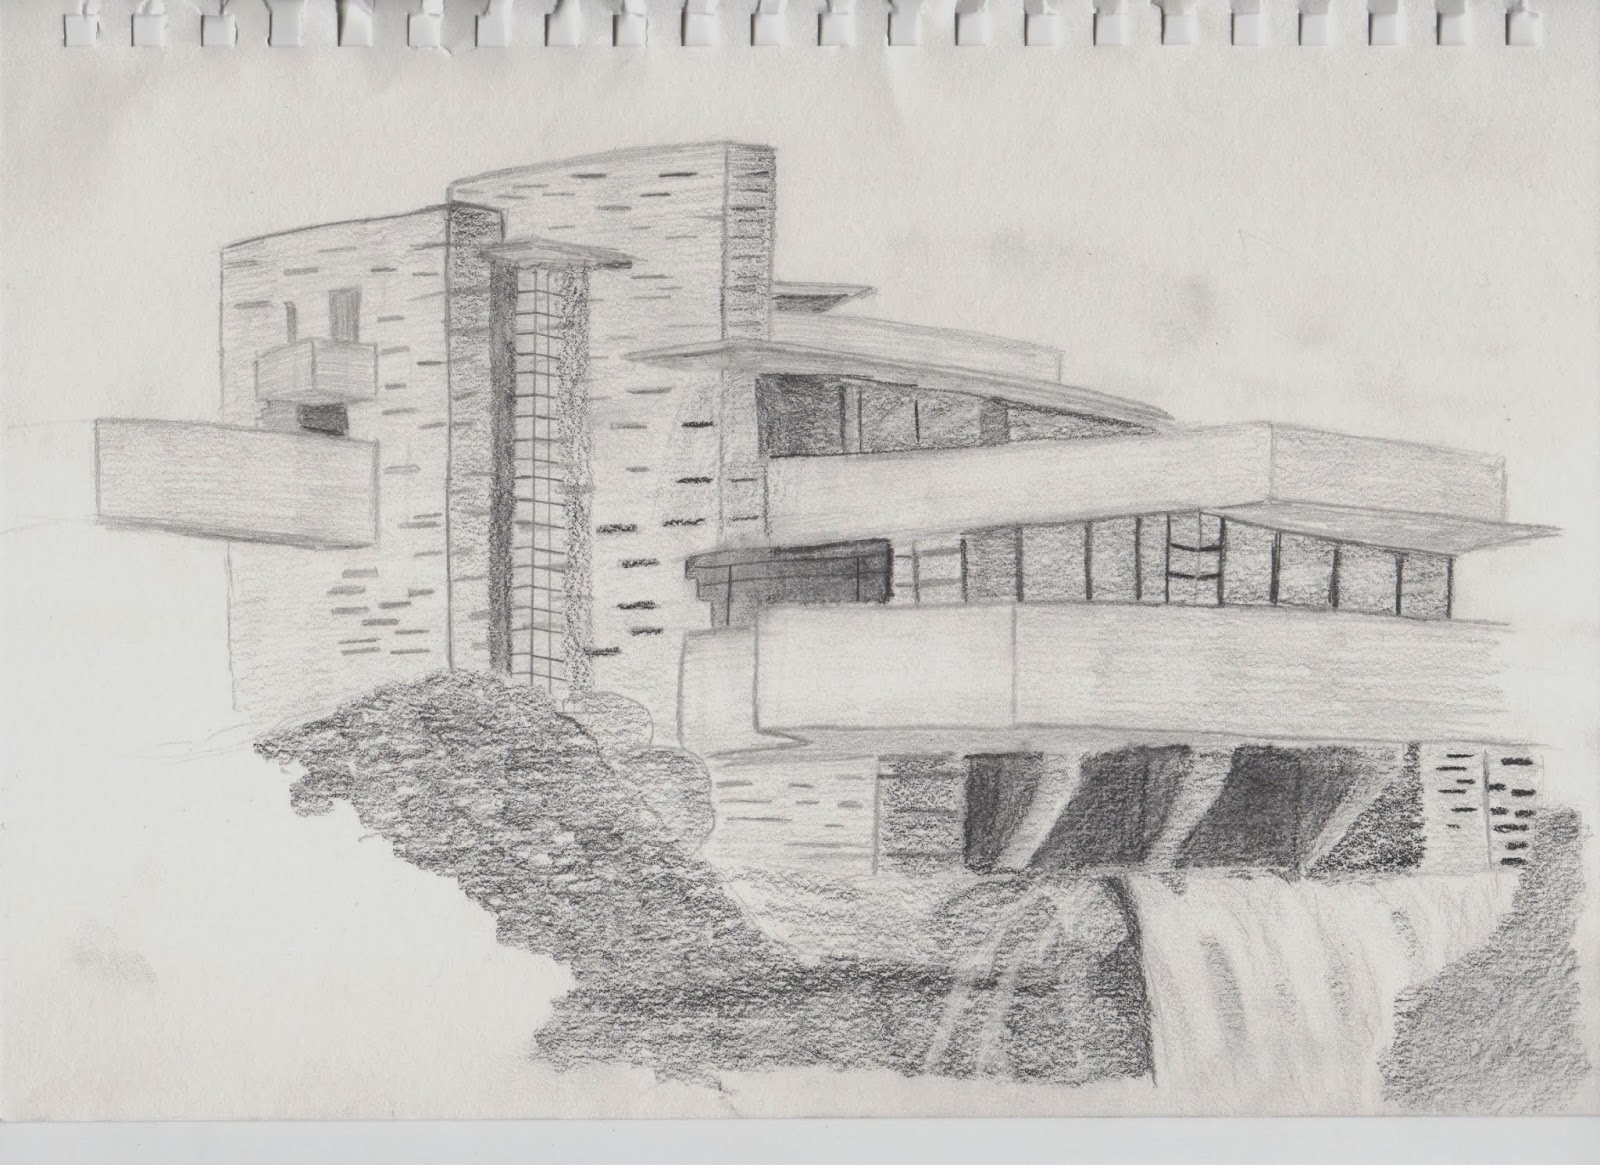 Fallingwater Is Designed By My Favourite Architect Frank Lloyd Wright I Chose To Sketch This Building In Order Challenge Myself As There Were Many